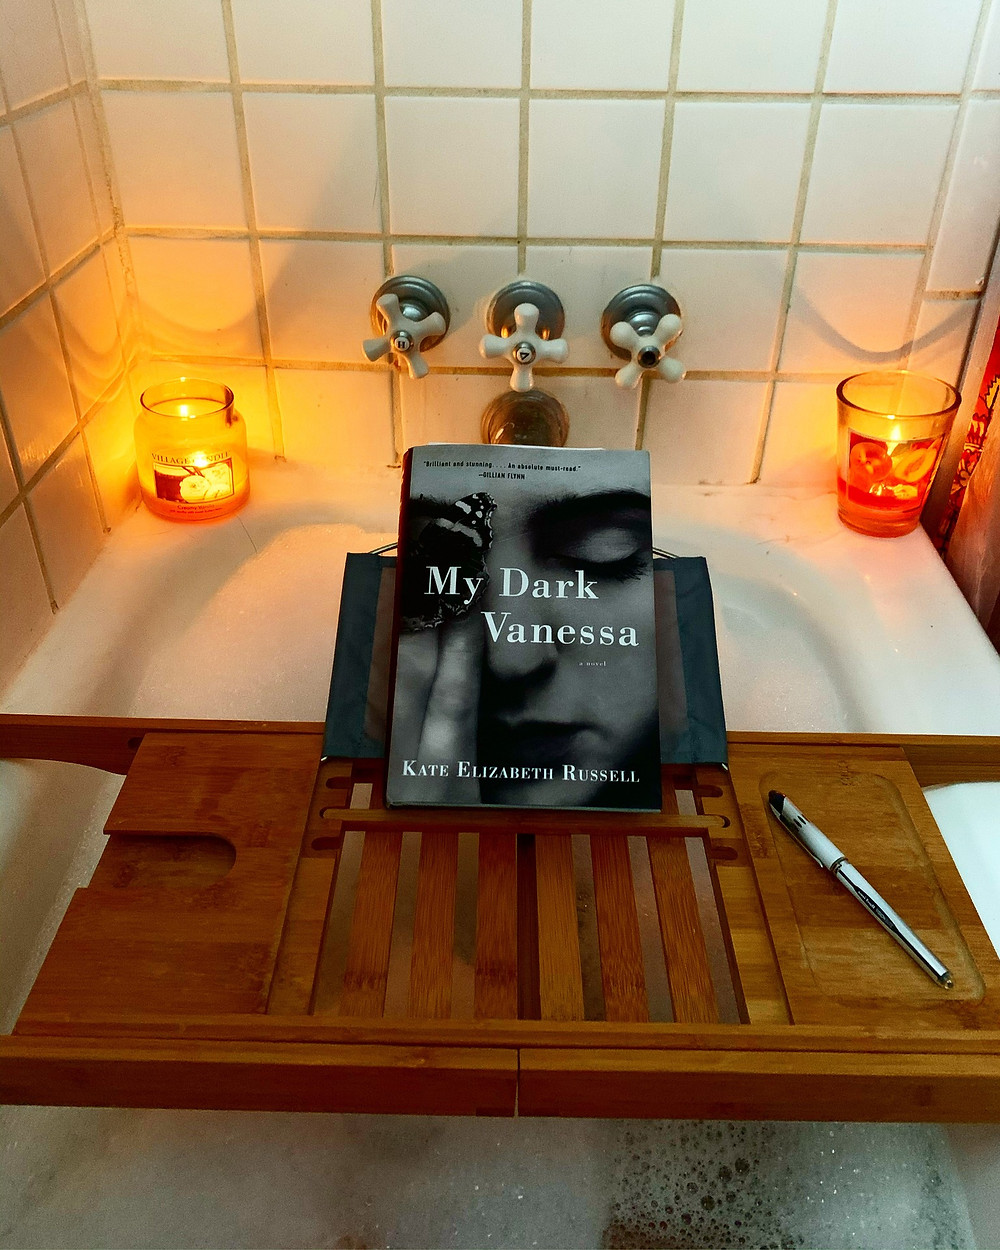 A bathtub filled with suds and adorned by candles with a shelf above with My Dark Vanessa and a pen on it.